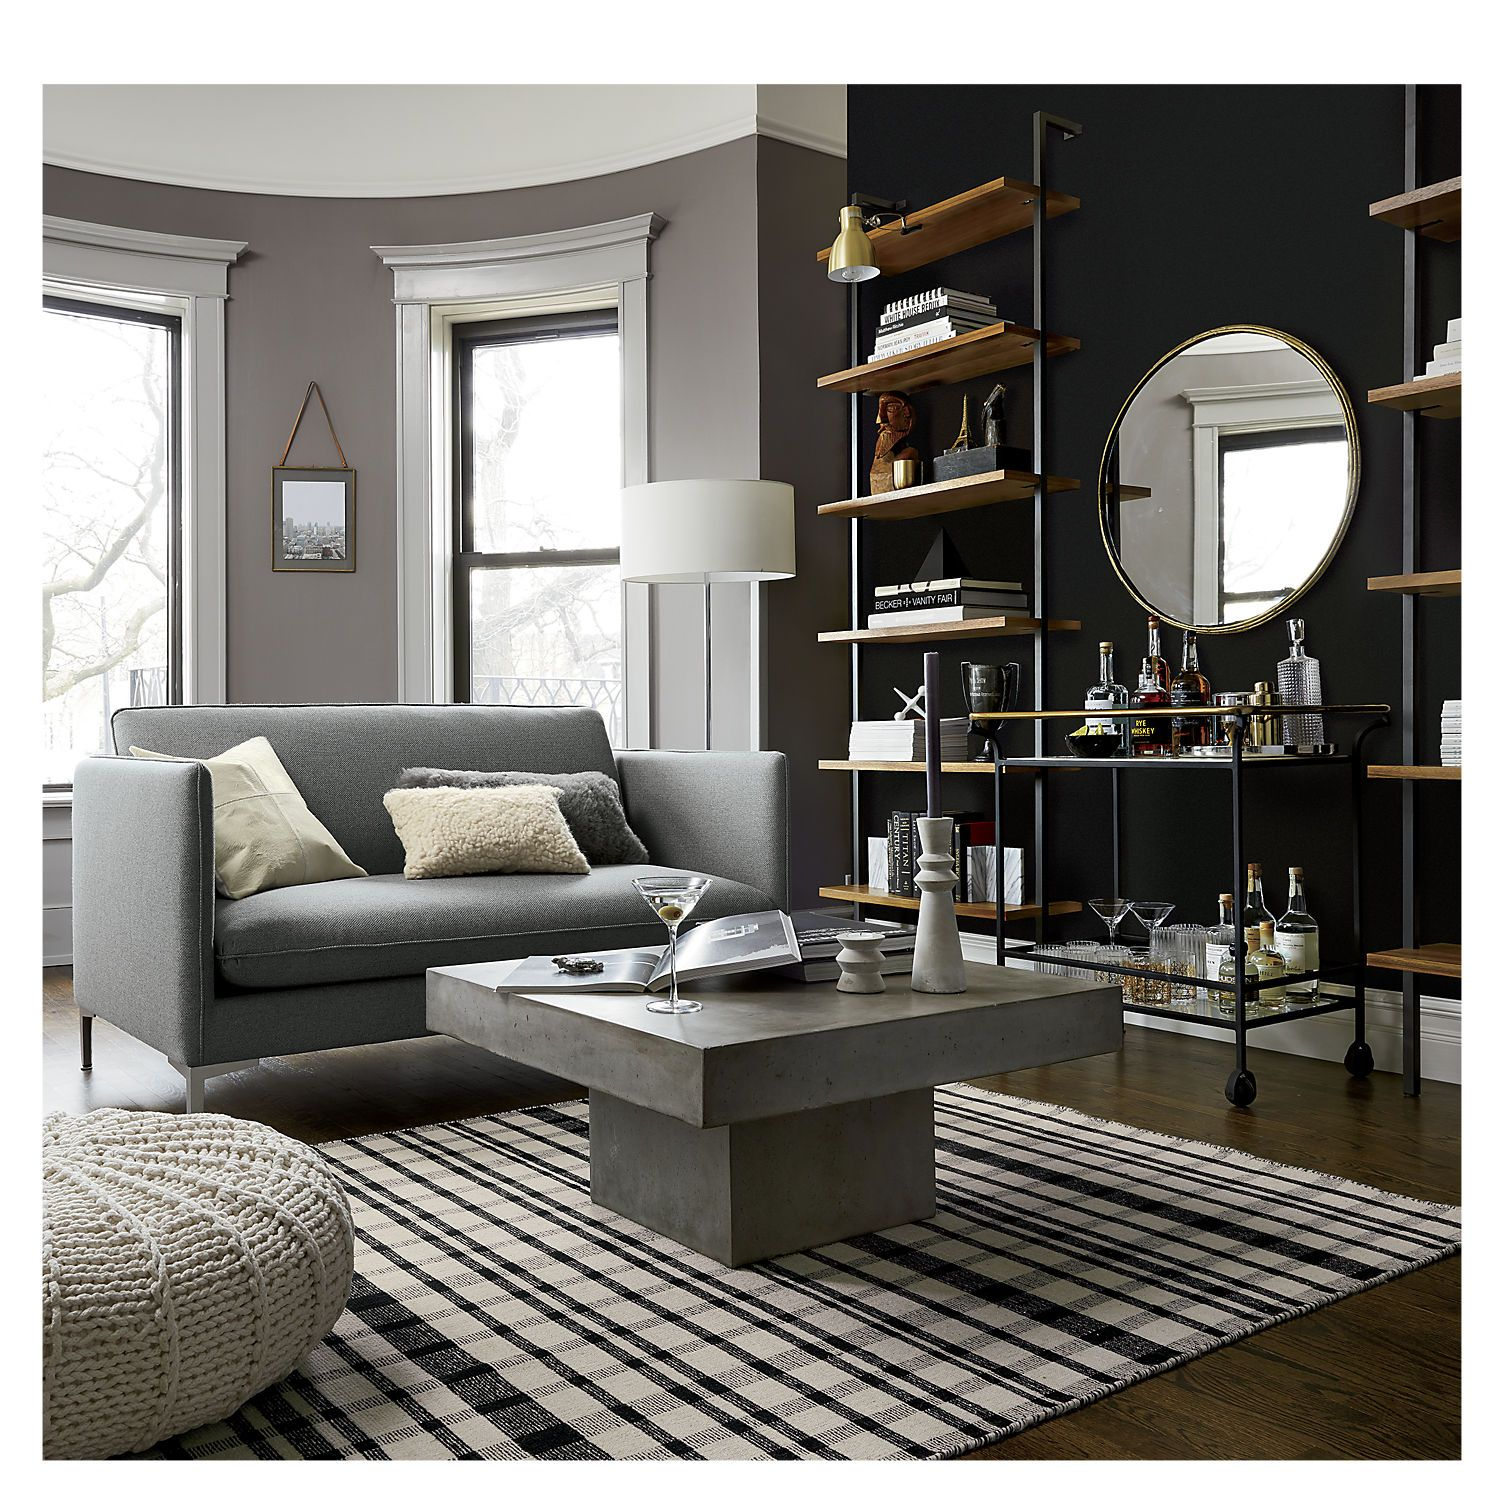 Grey Walls Helix 96 Acacia Bookcase All The Right Angles For Stuff Six Fixed Veneer Shelves Stained A Warm Midtone Brown Ladder